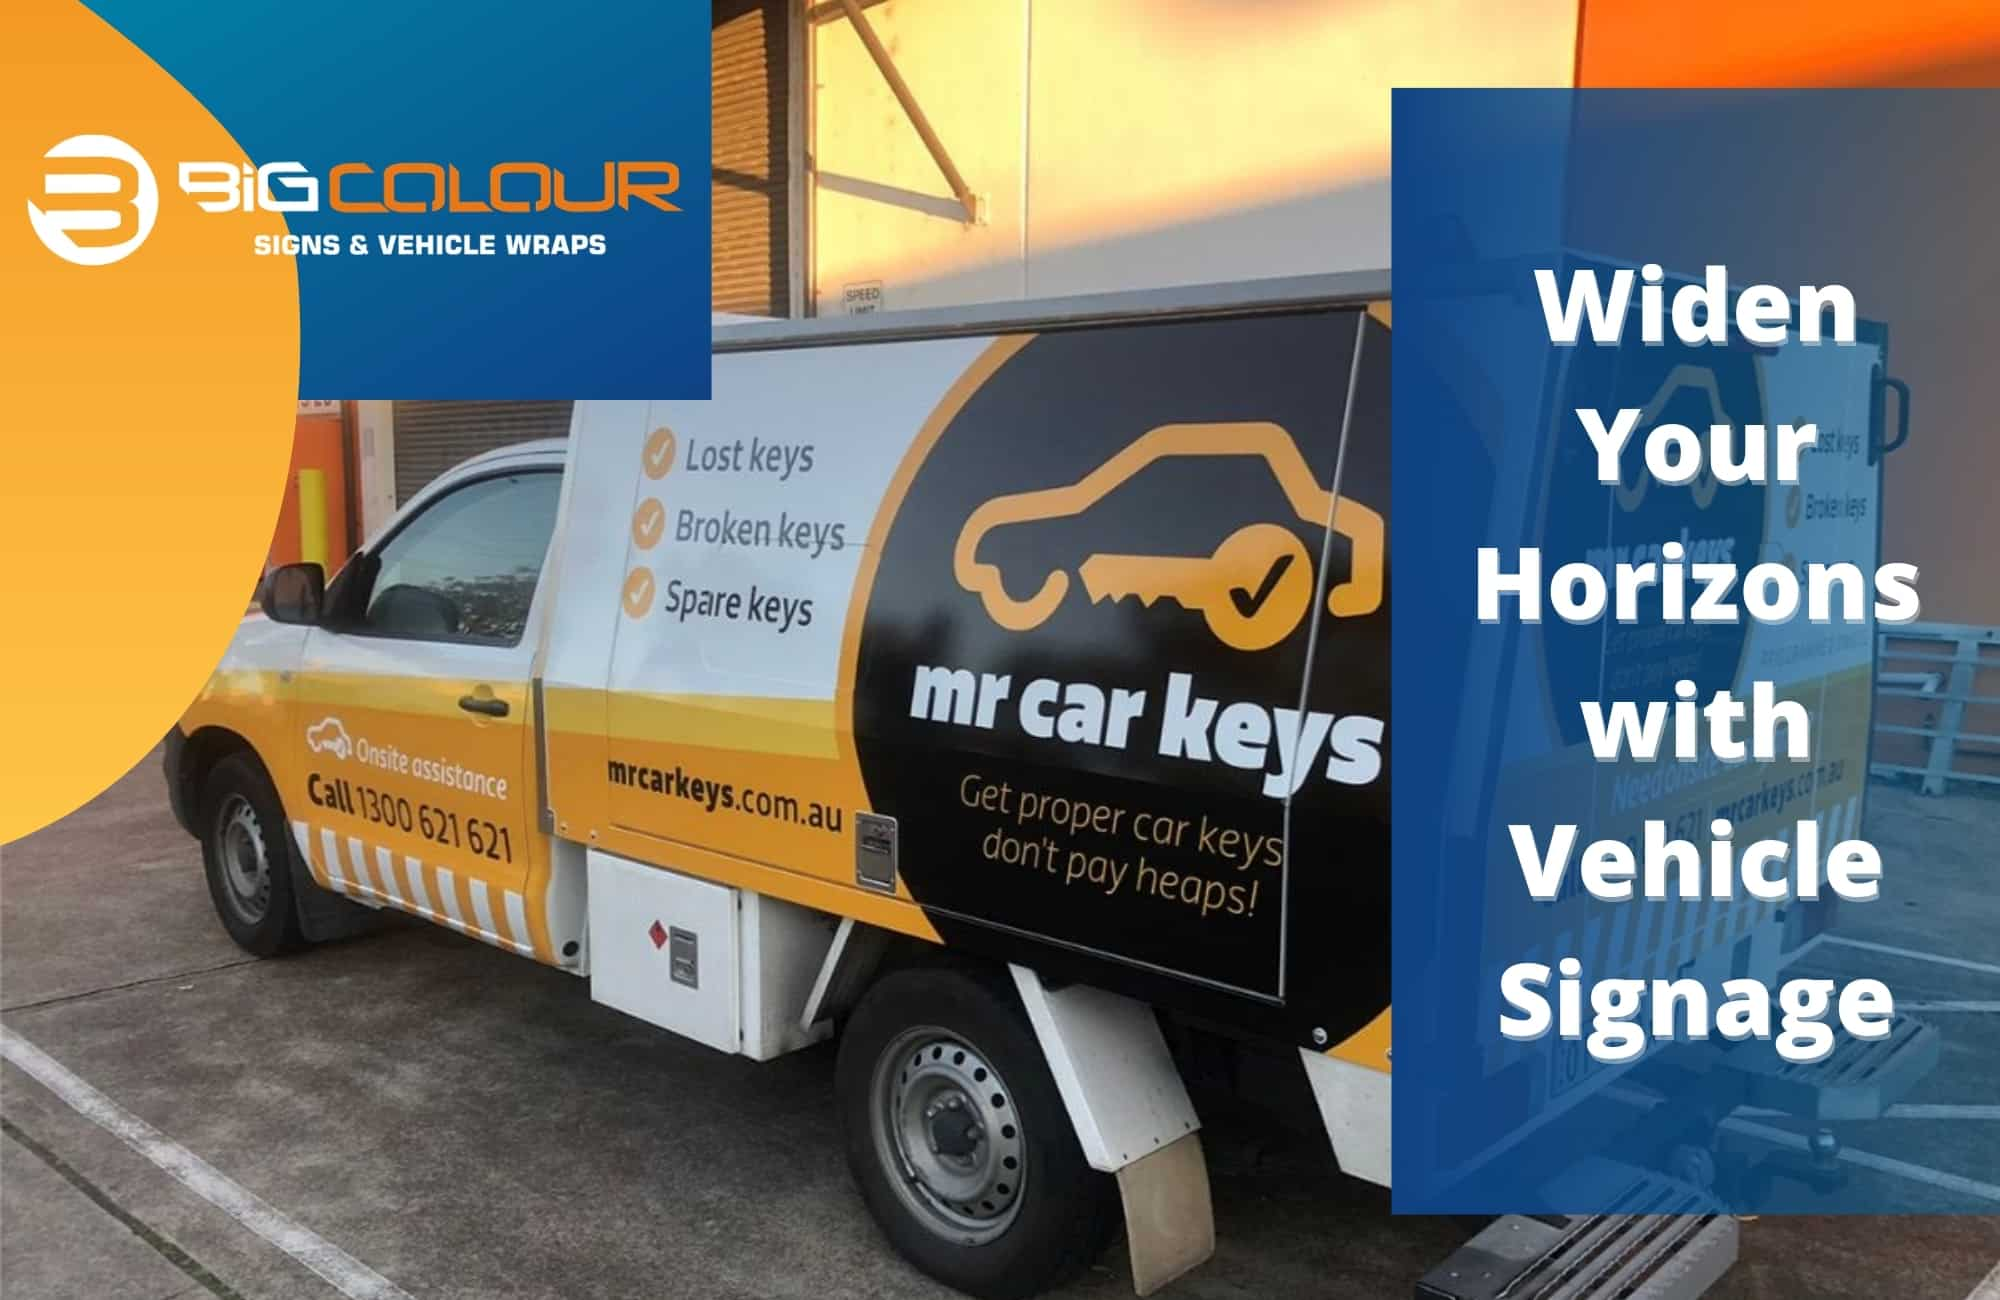 Widen Your Horizons with Vehicle Signage